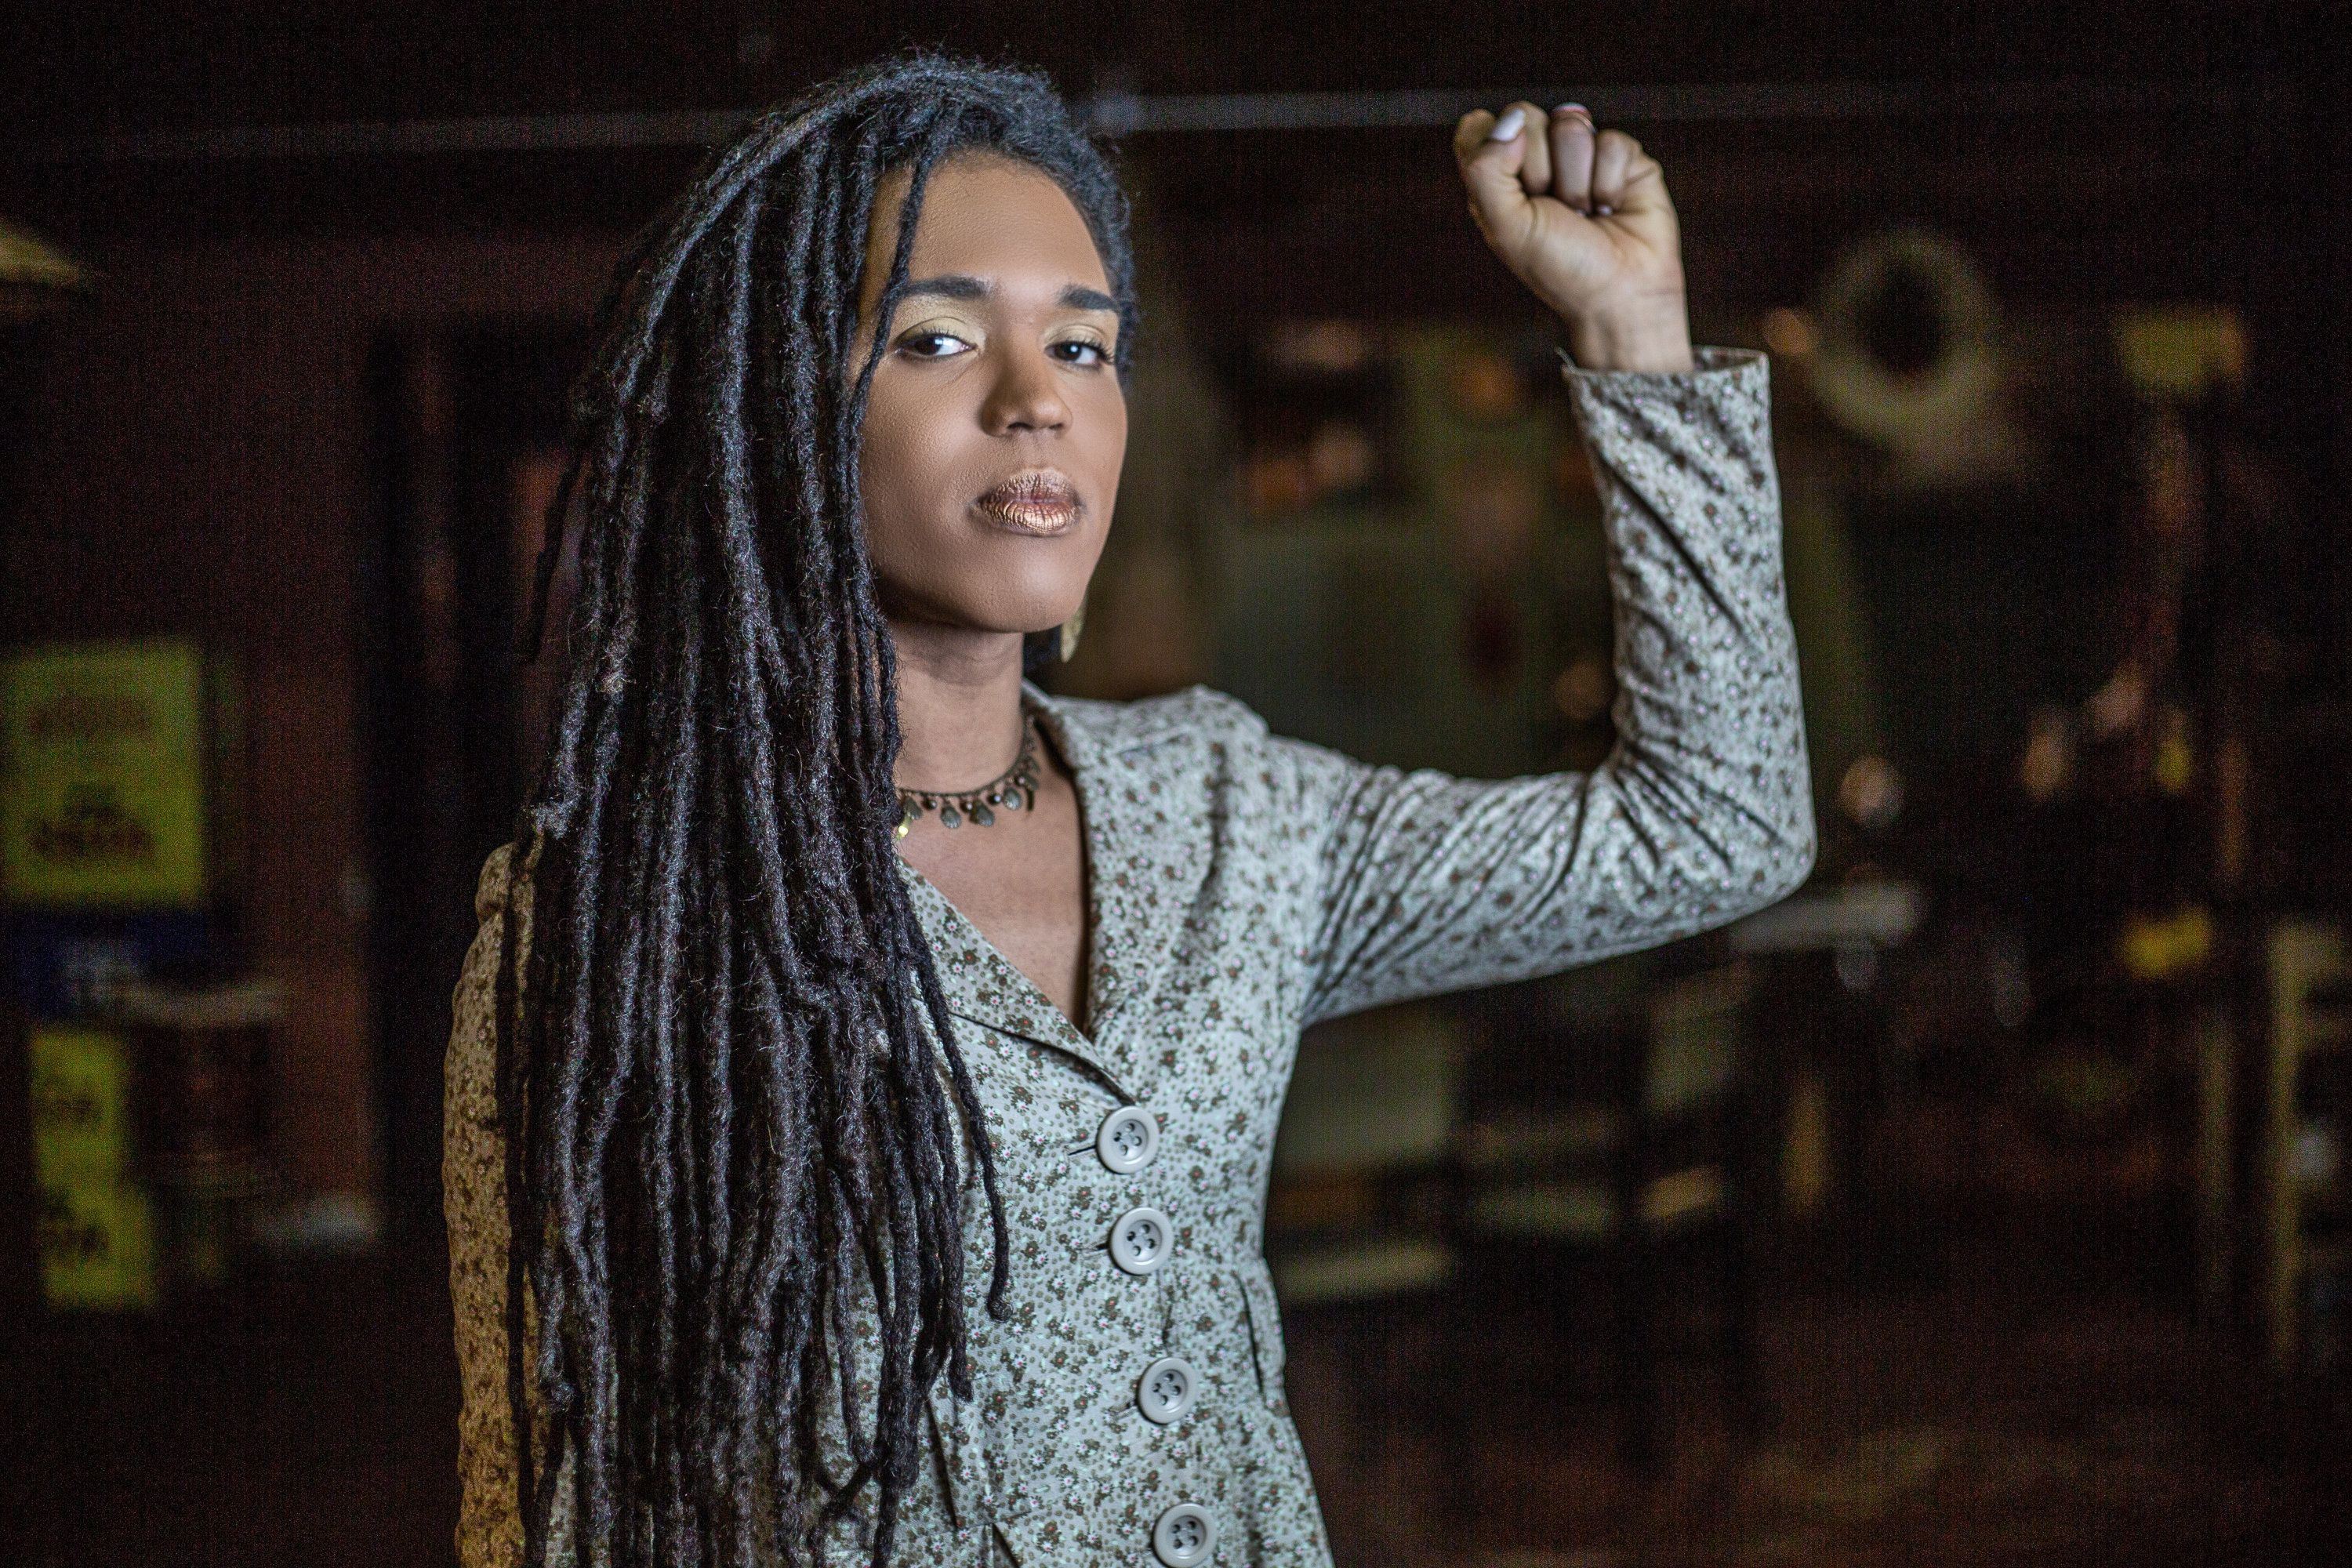 Erica Malunguinho, Brazil's first black trans woman to be elected a state